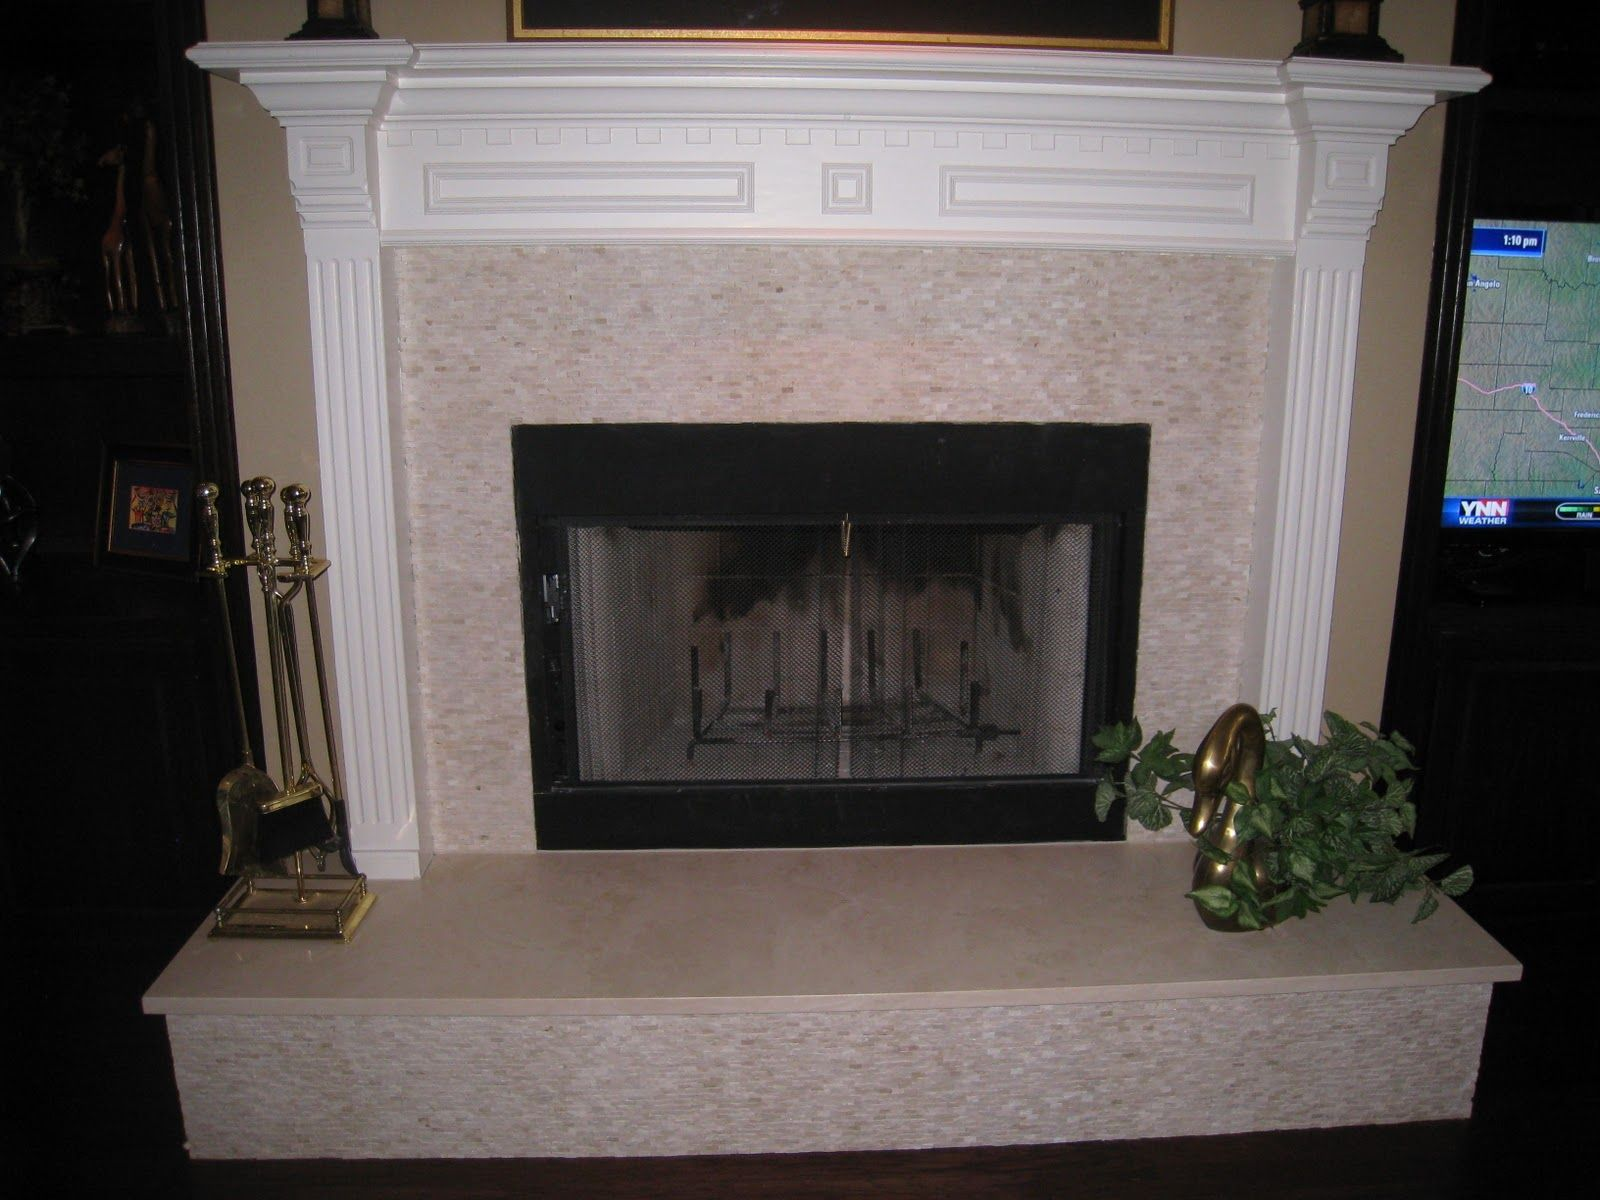 tile fireplace designs tile from diamond tech with a on this fireplace tile fireplaces design - Fireplace Design Ideas With Tile